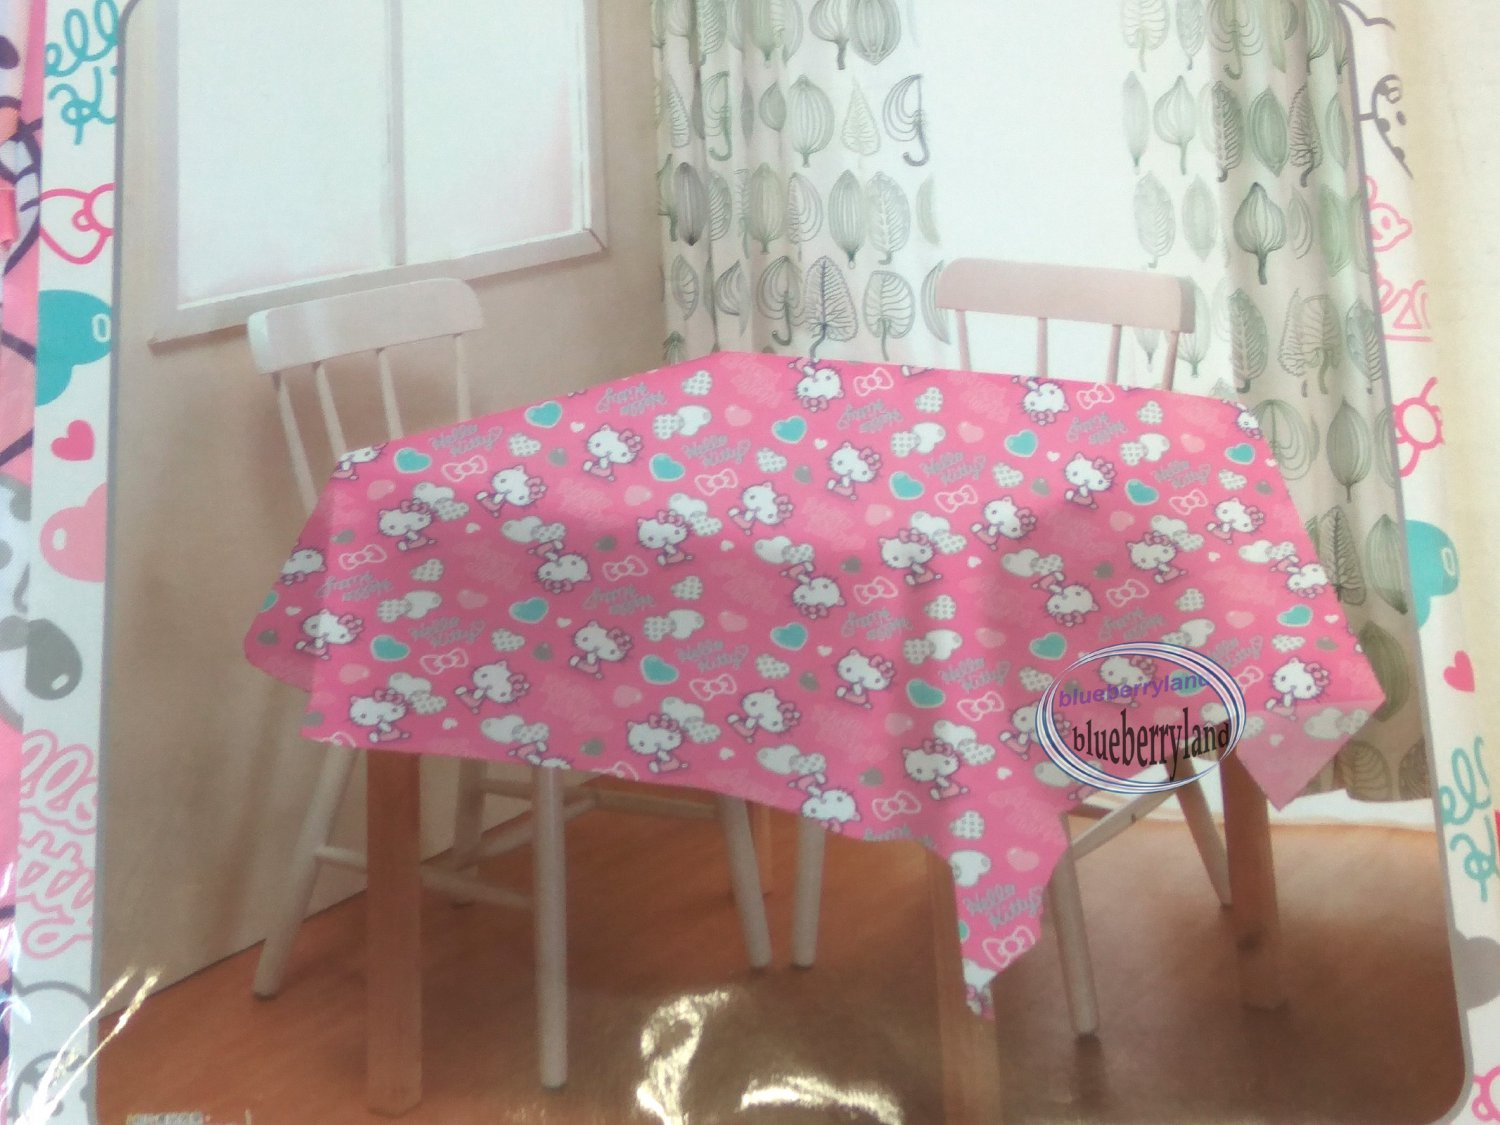 Sanrio HELLO KITTY Table Cloth dining table kitchen 54 x 54 inches